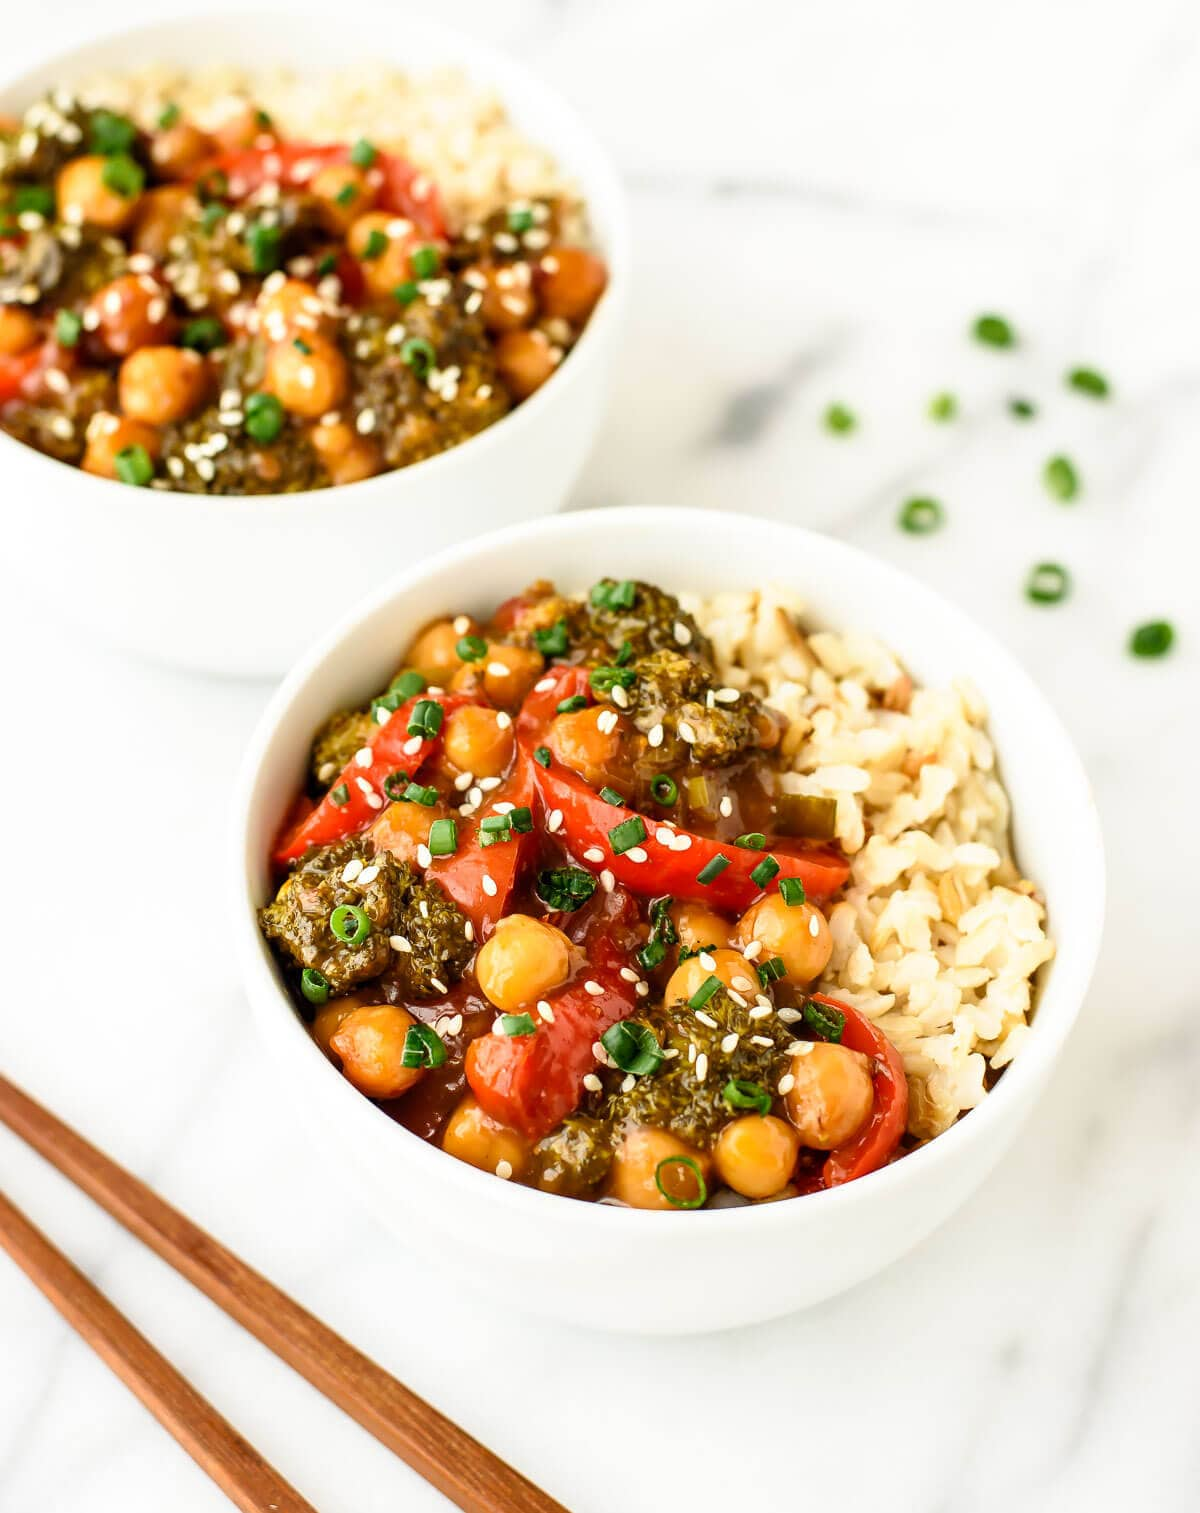 One pan General Tso's Chickpeas - a vegetarian twist on classic General Tso's Chicken that's easier to make with HALF the calories. WAY better than take out!